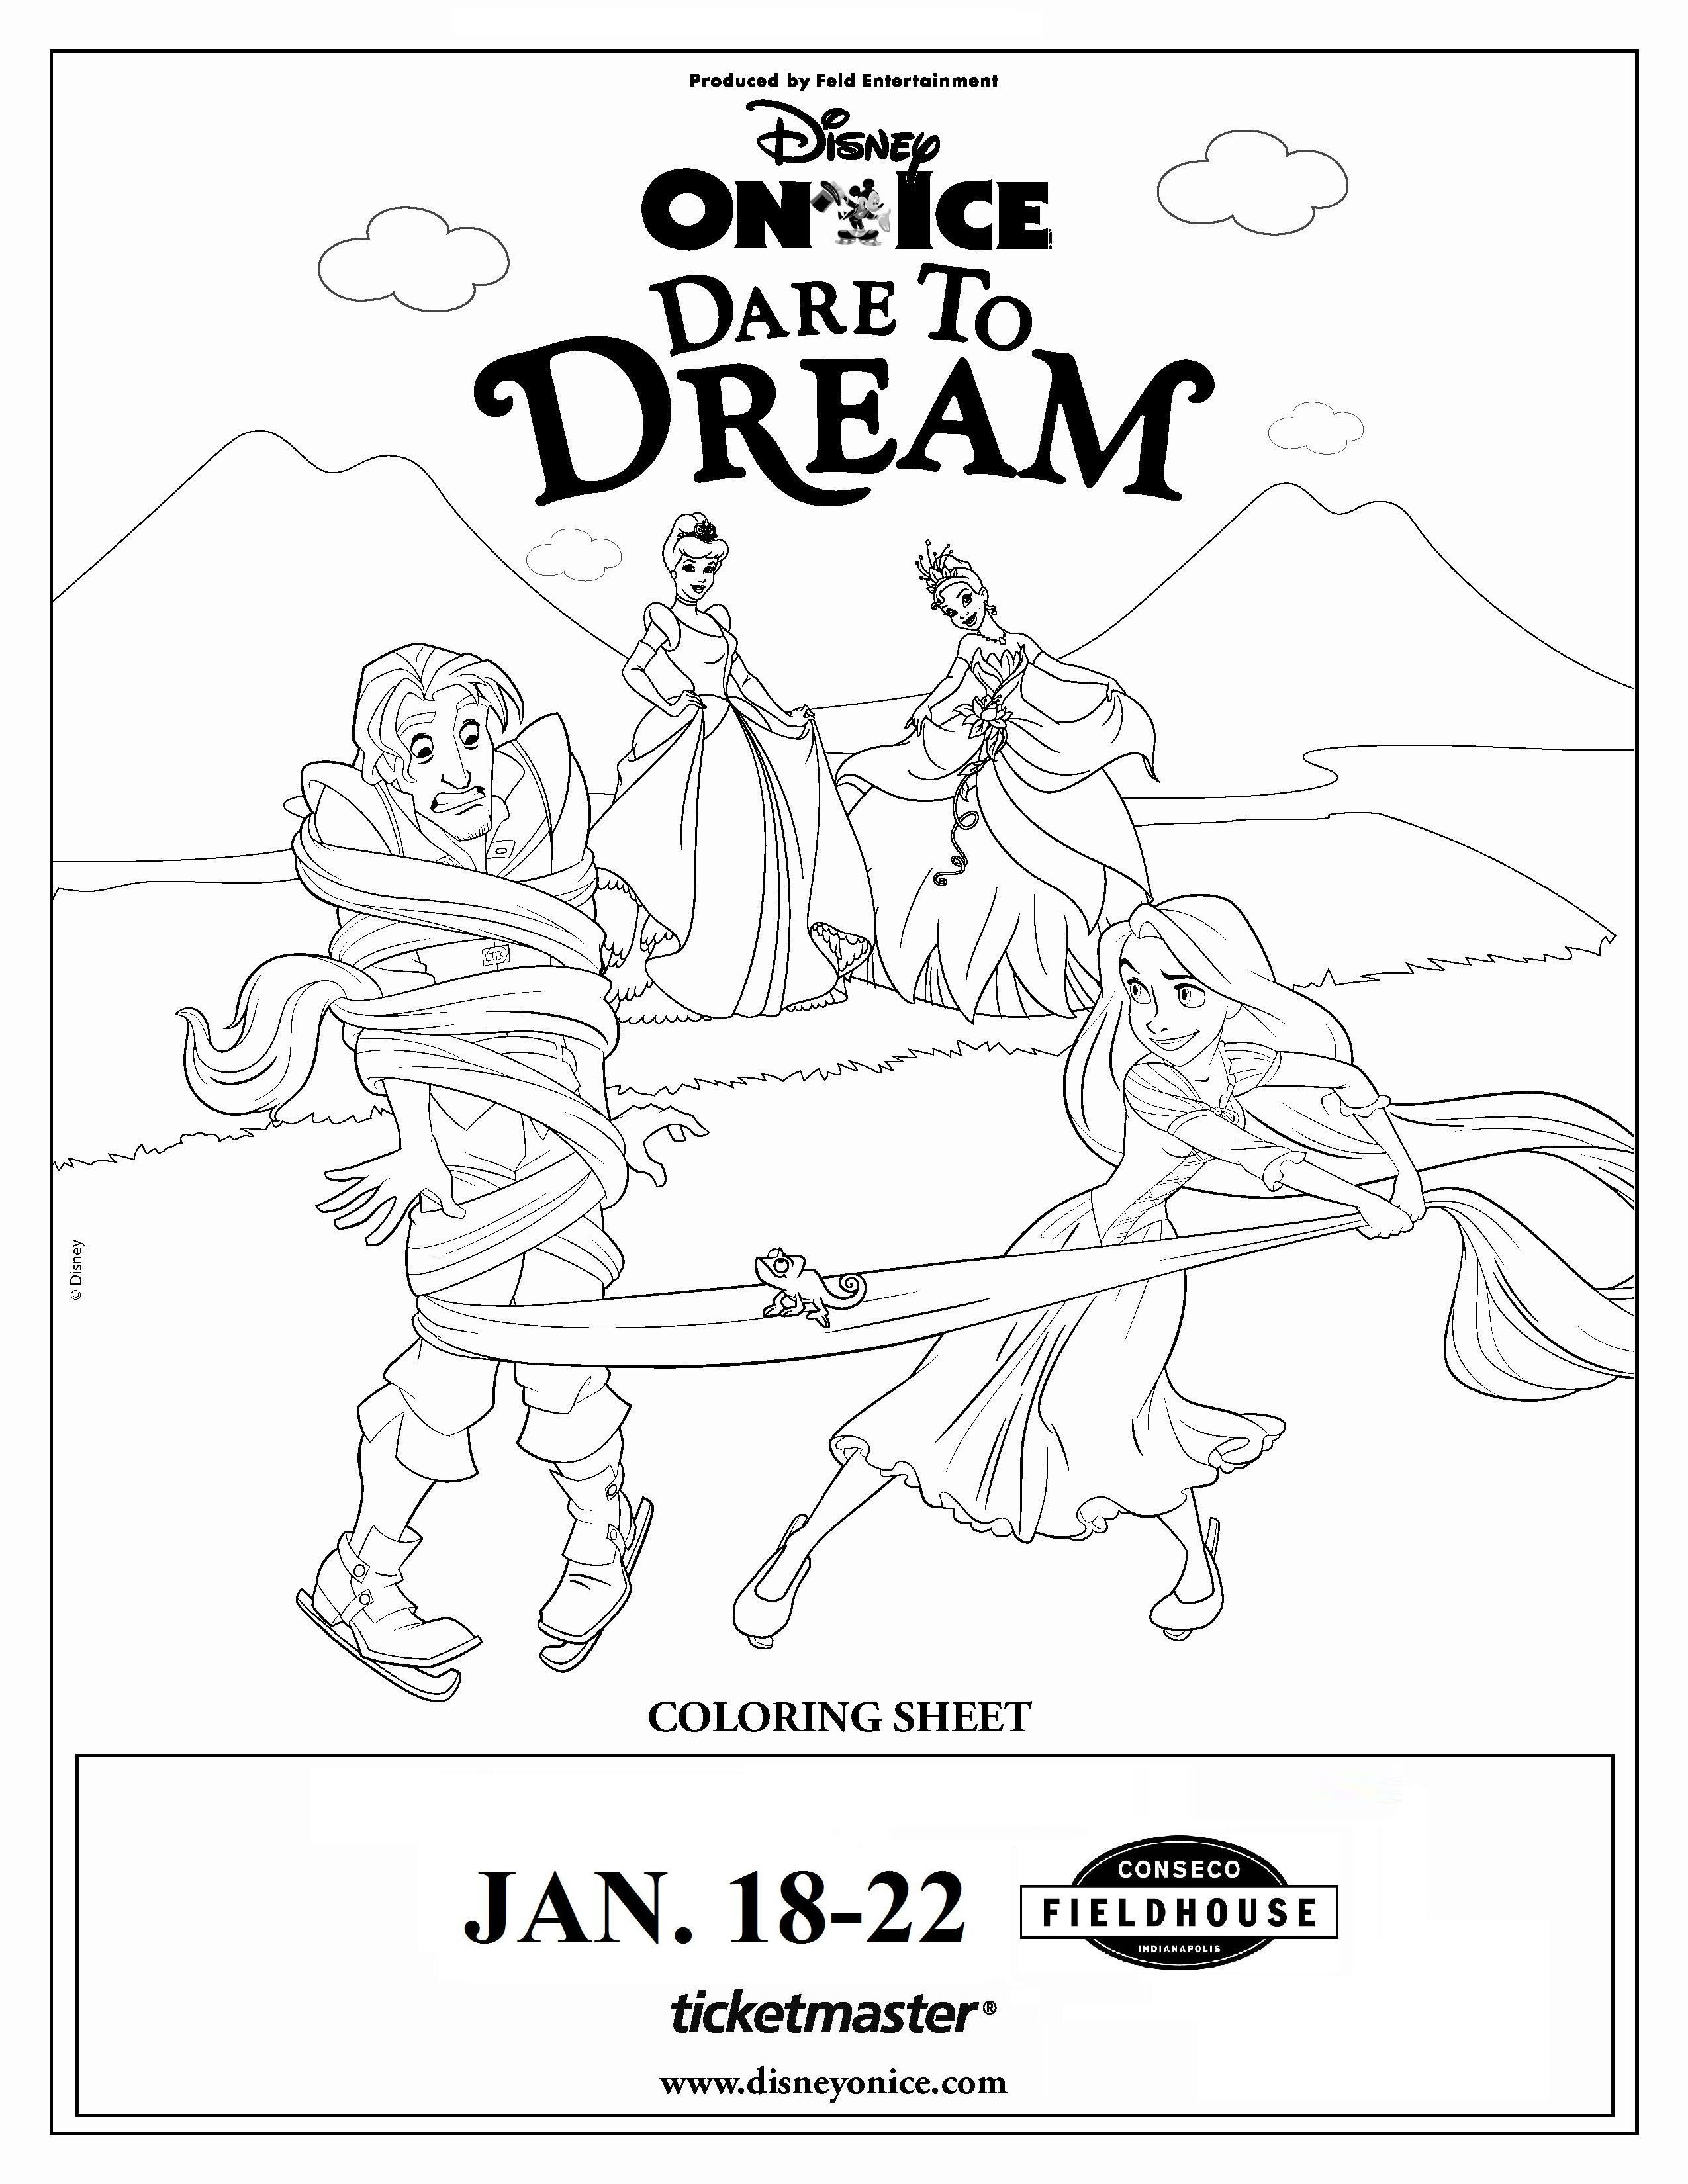 Disney On Ice Dare To Dream Poster Coloring Pages Disney On Ice Disney Princess Colors Disney Princess Coloring Pages